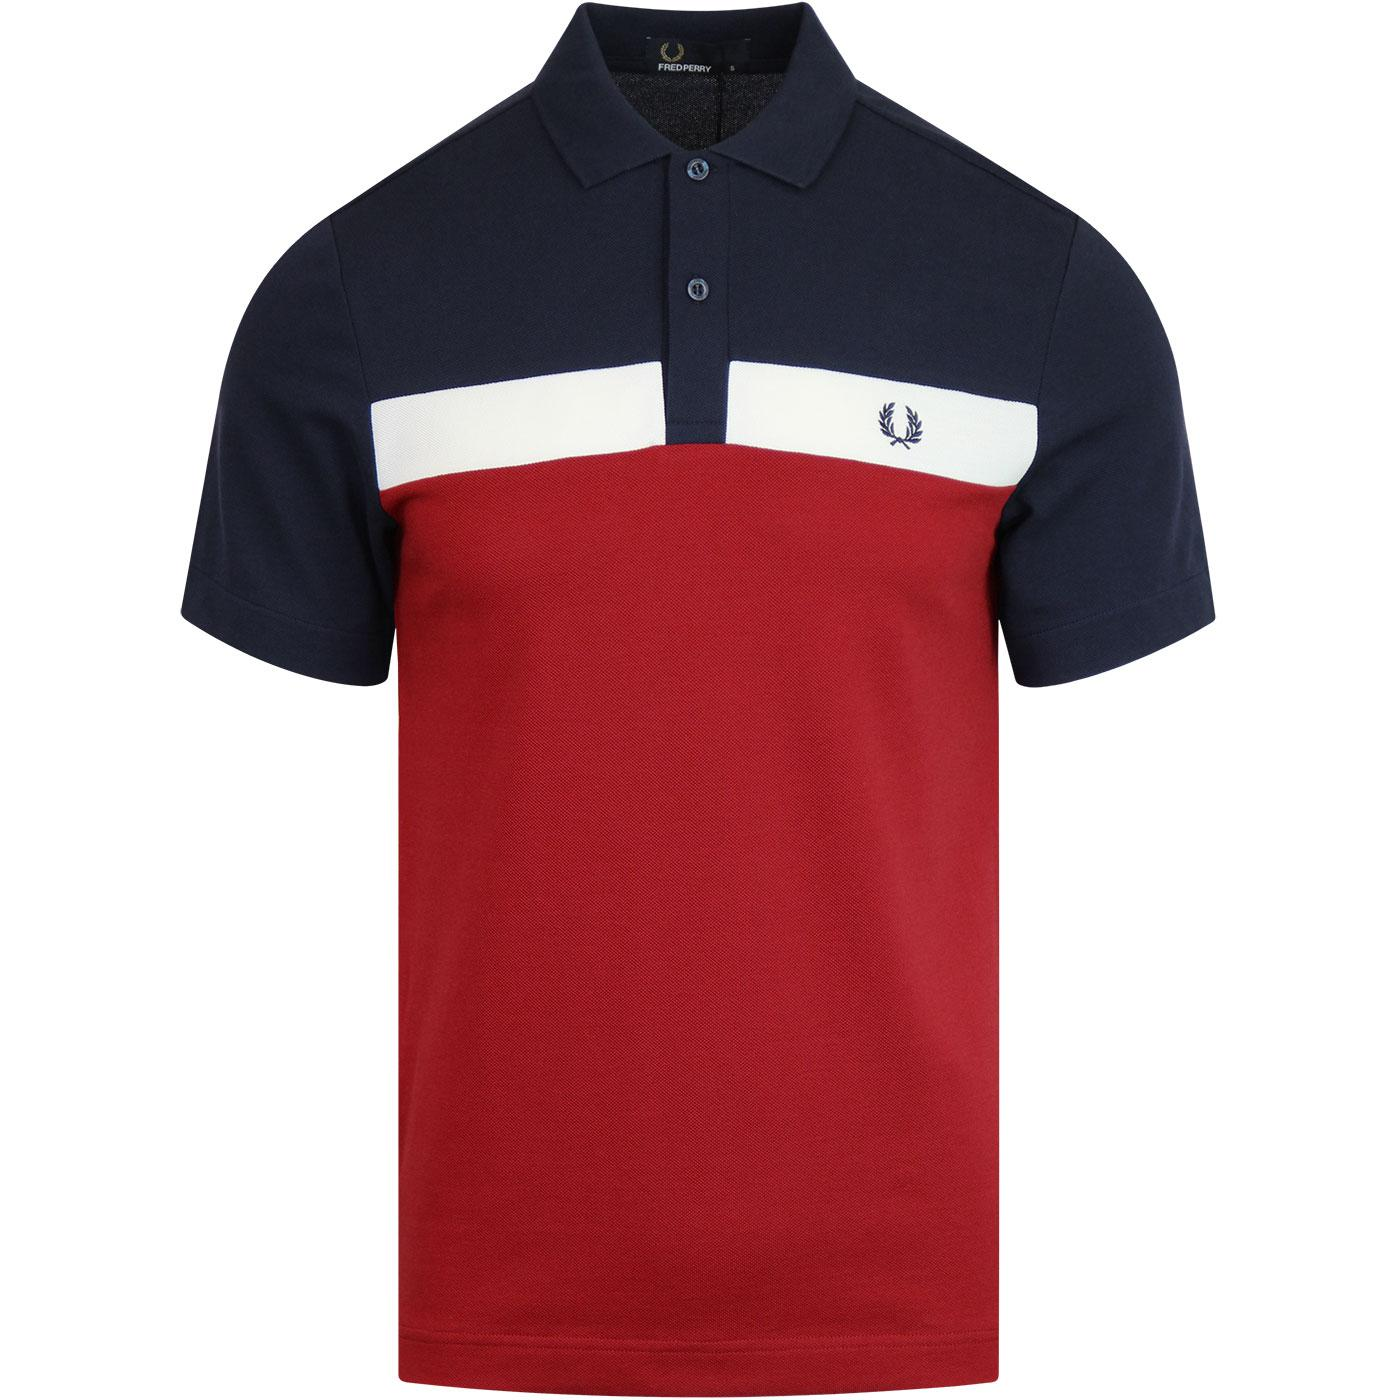 FRED PERRY Contrast Panel Mod Pique Polo RICH RED